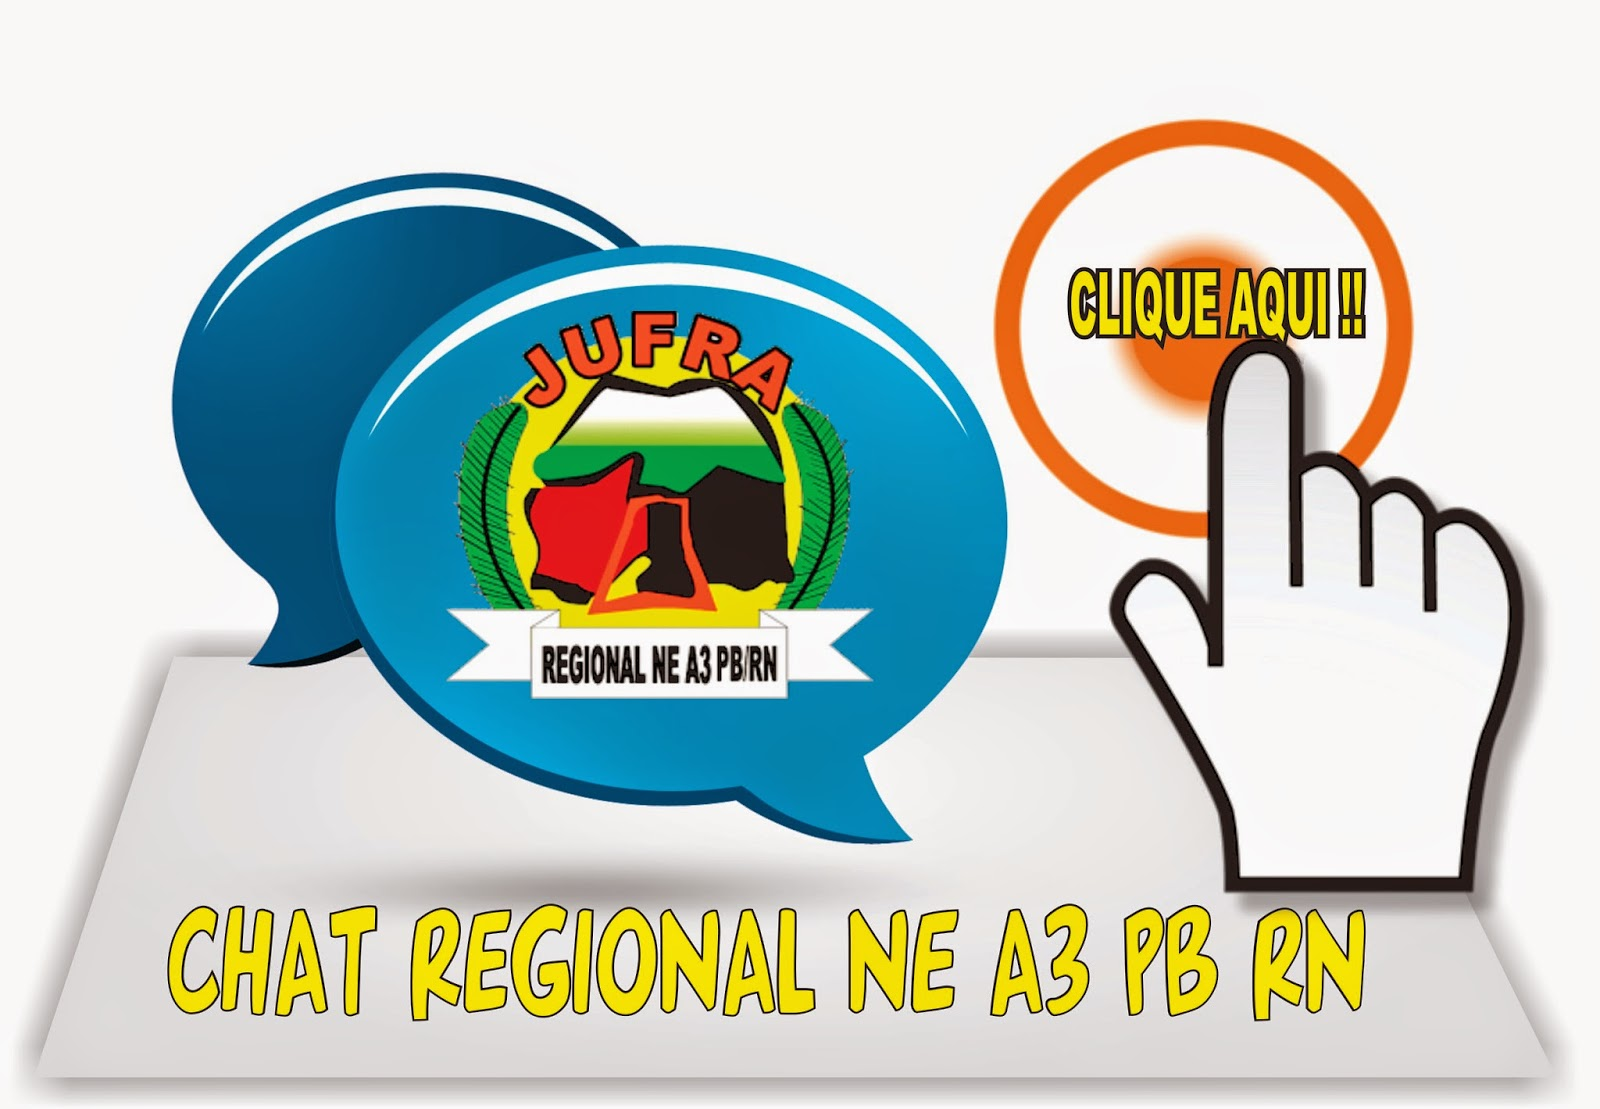 CHAT DO REGIONAL